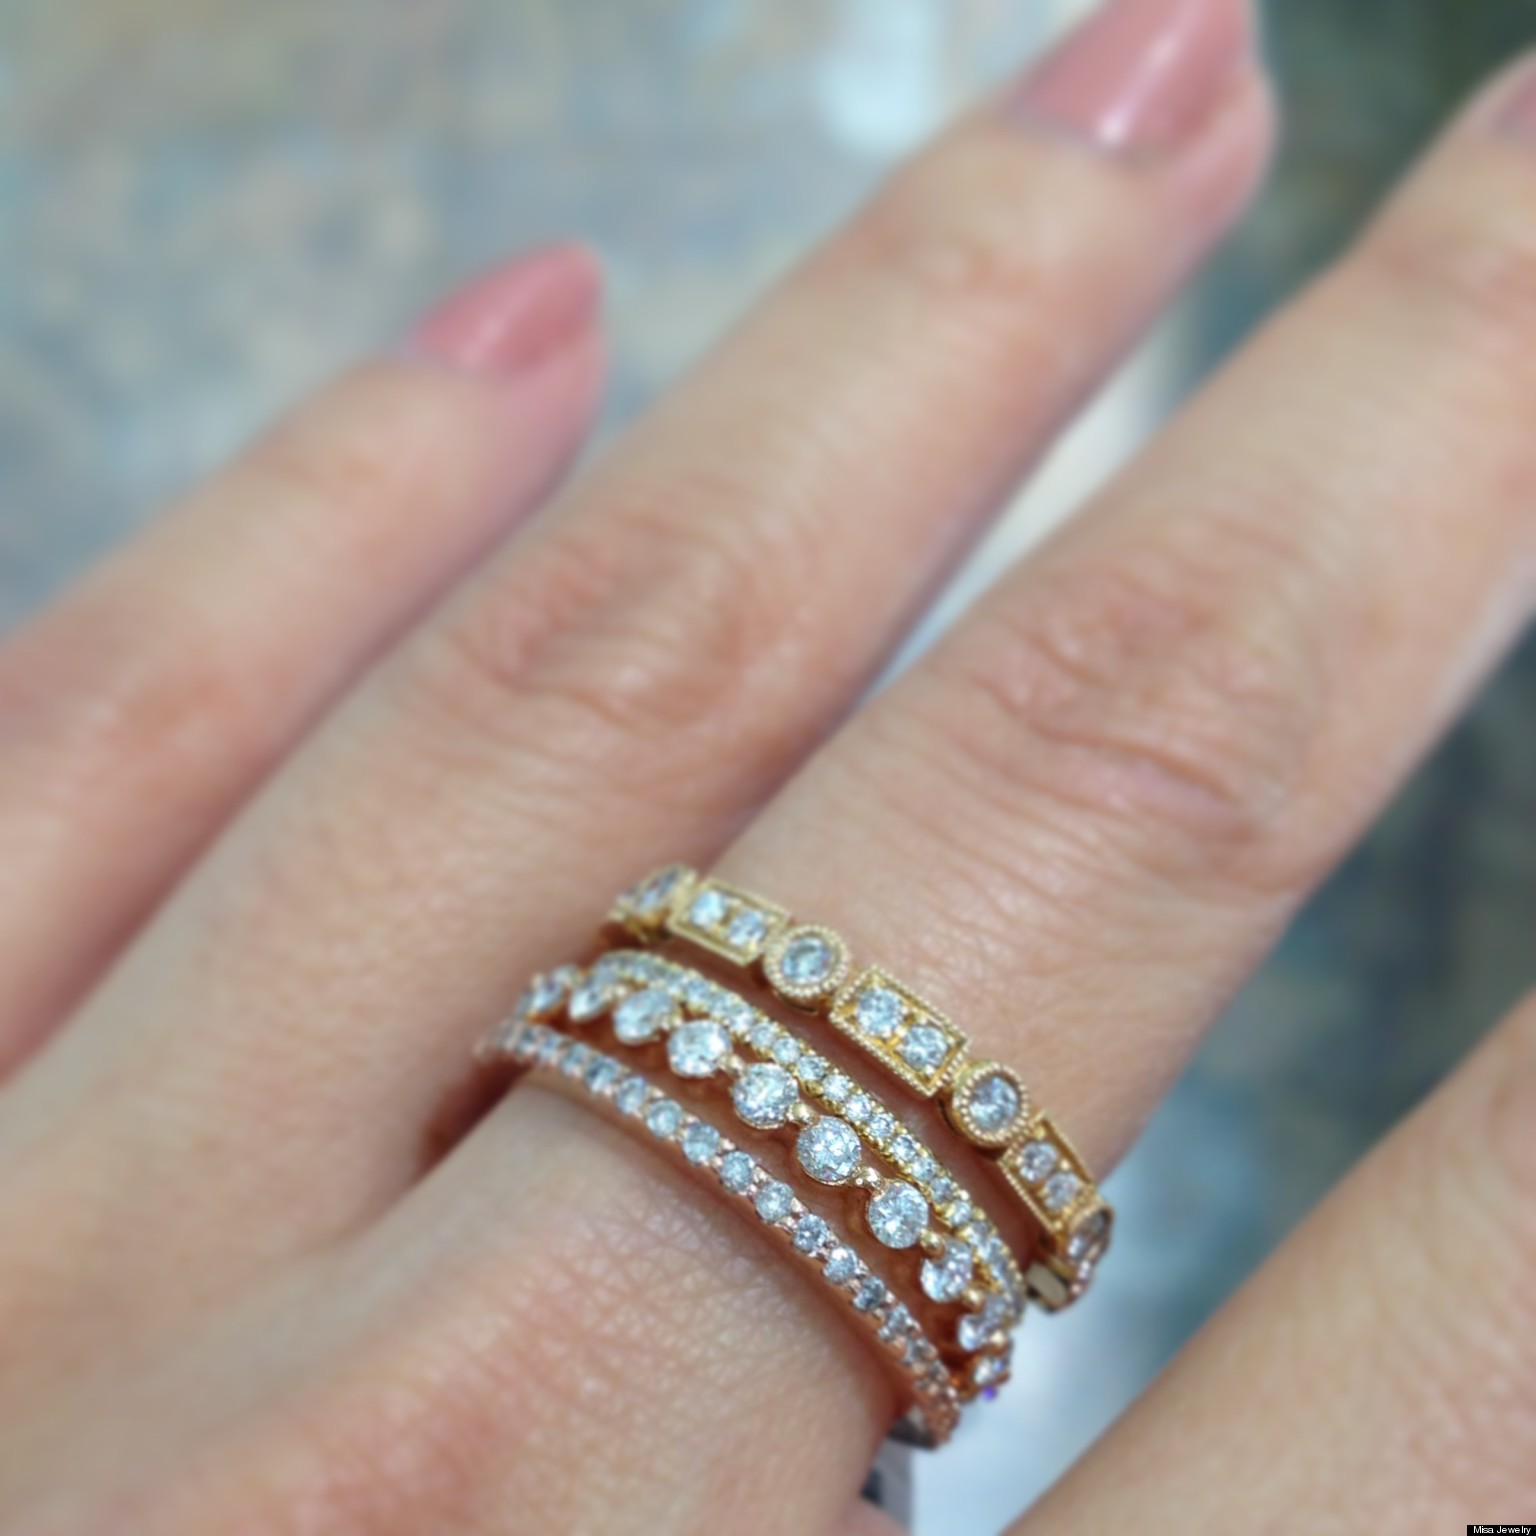 stackable wedding bands are one of our favorite jewelry trends photos huffpost - Stacked Wedding Rings